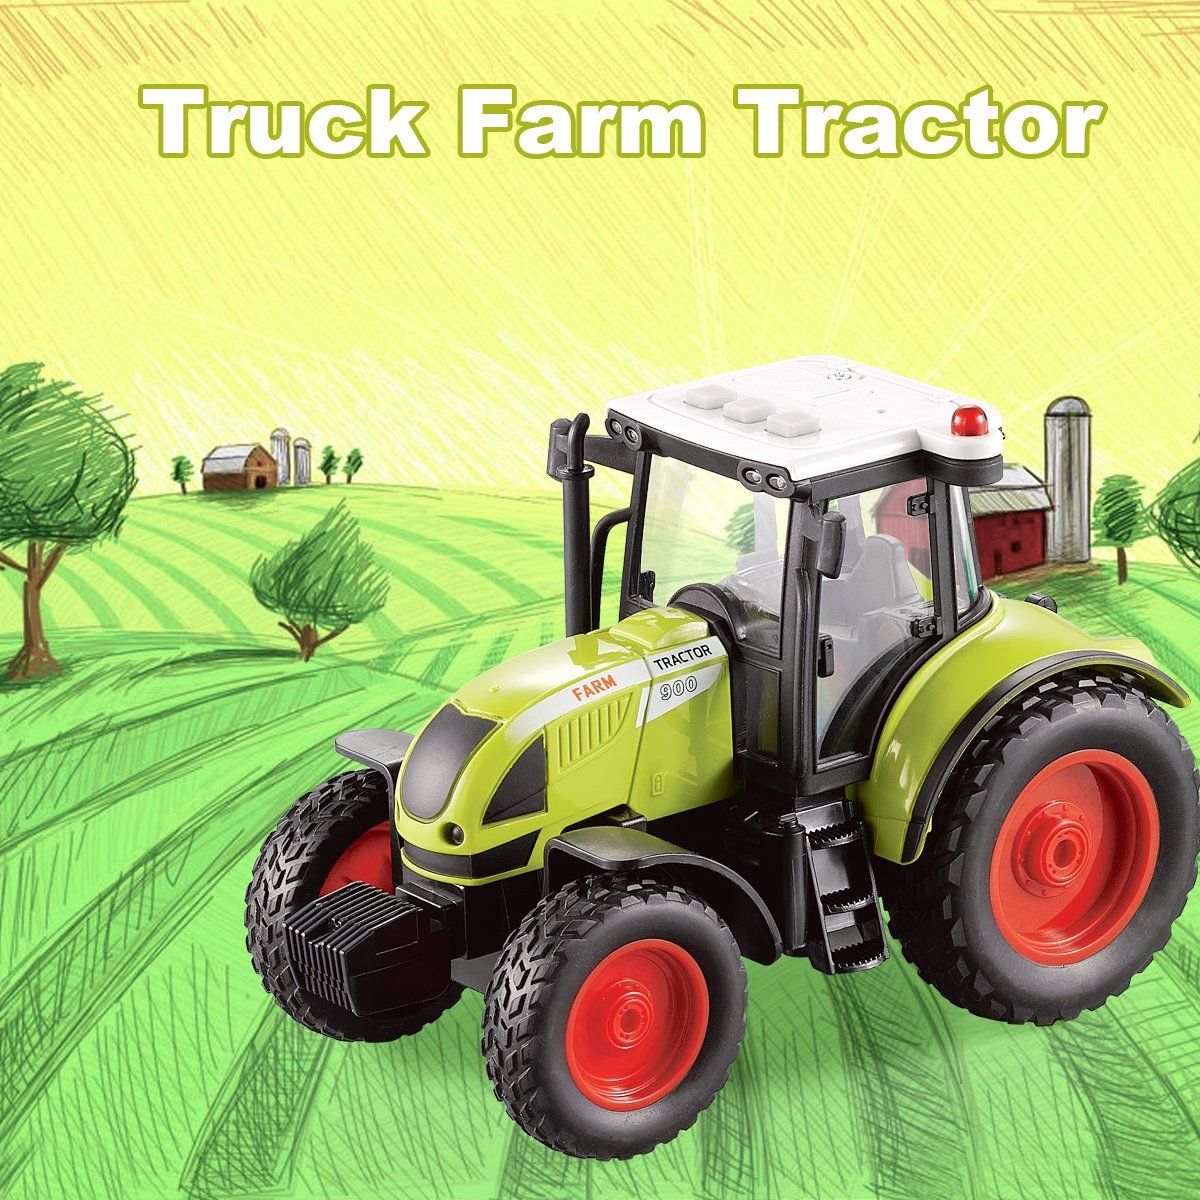 Fistone 1 16 Truck Inertia Farm Tractor Modern Farm Machinery Car Toy Simulation Farmer Tractor Hobby Toys For Kids With Led Light Hobby Toys Kids Toys Toy Car